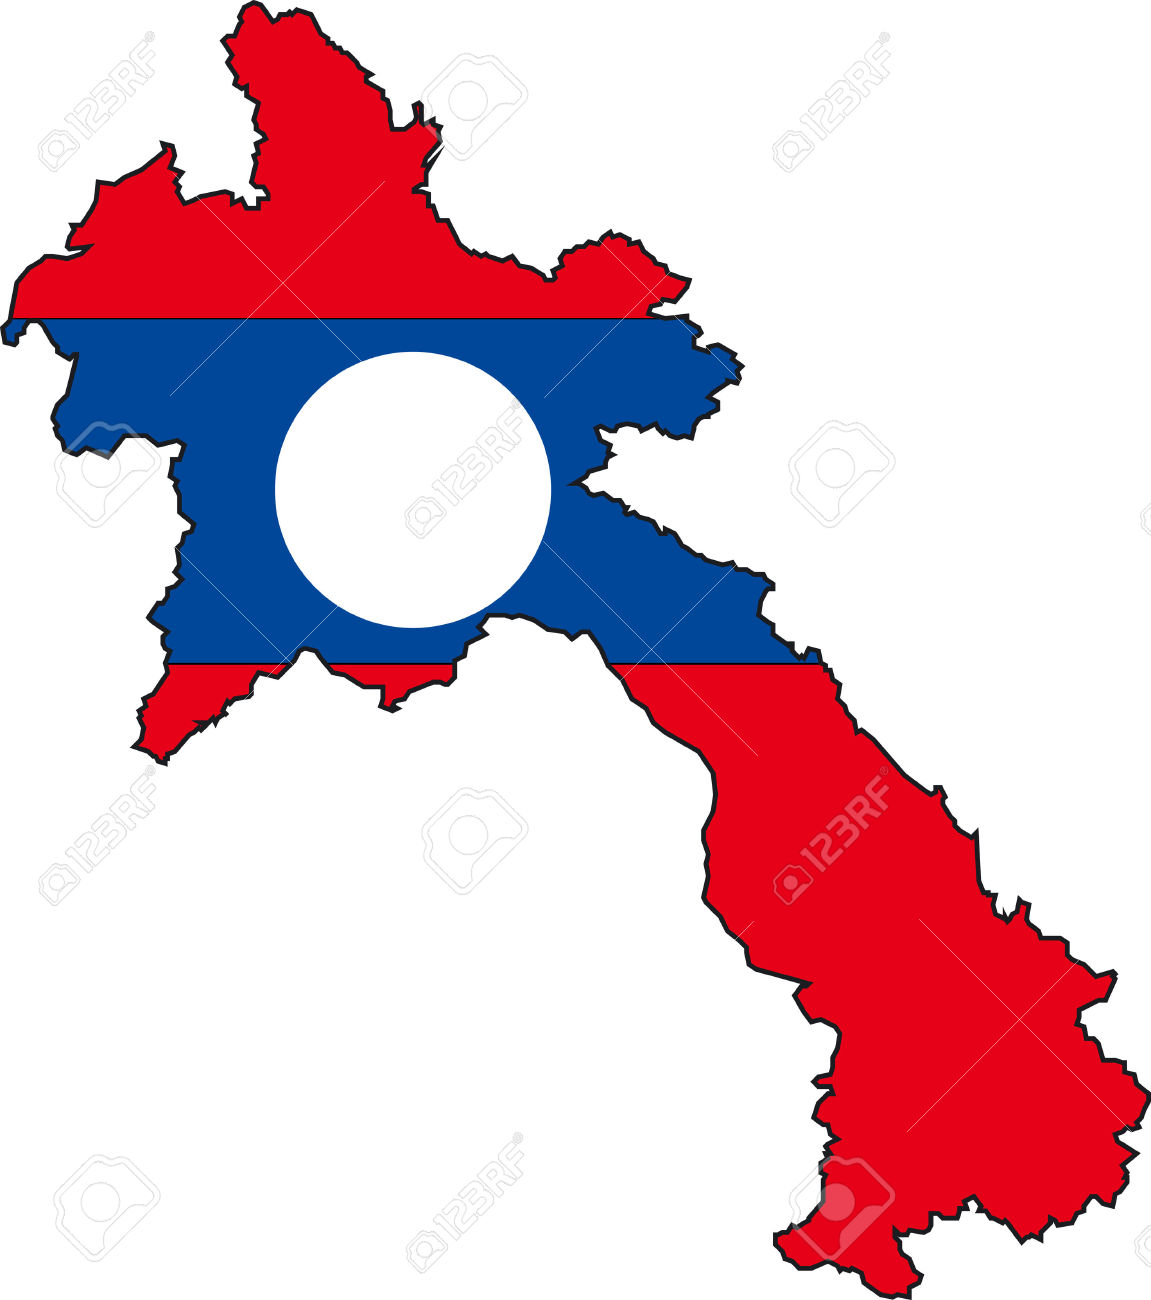 Illustration Vector Of A Map And Flag From Laos Royalty Free.